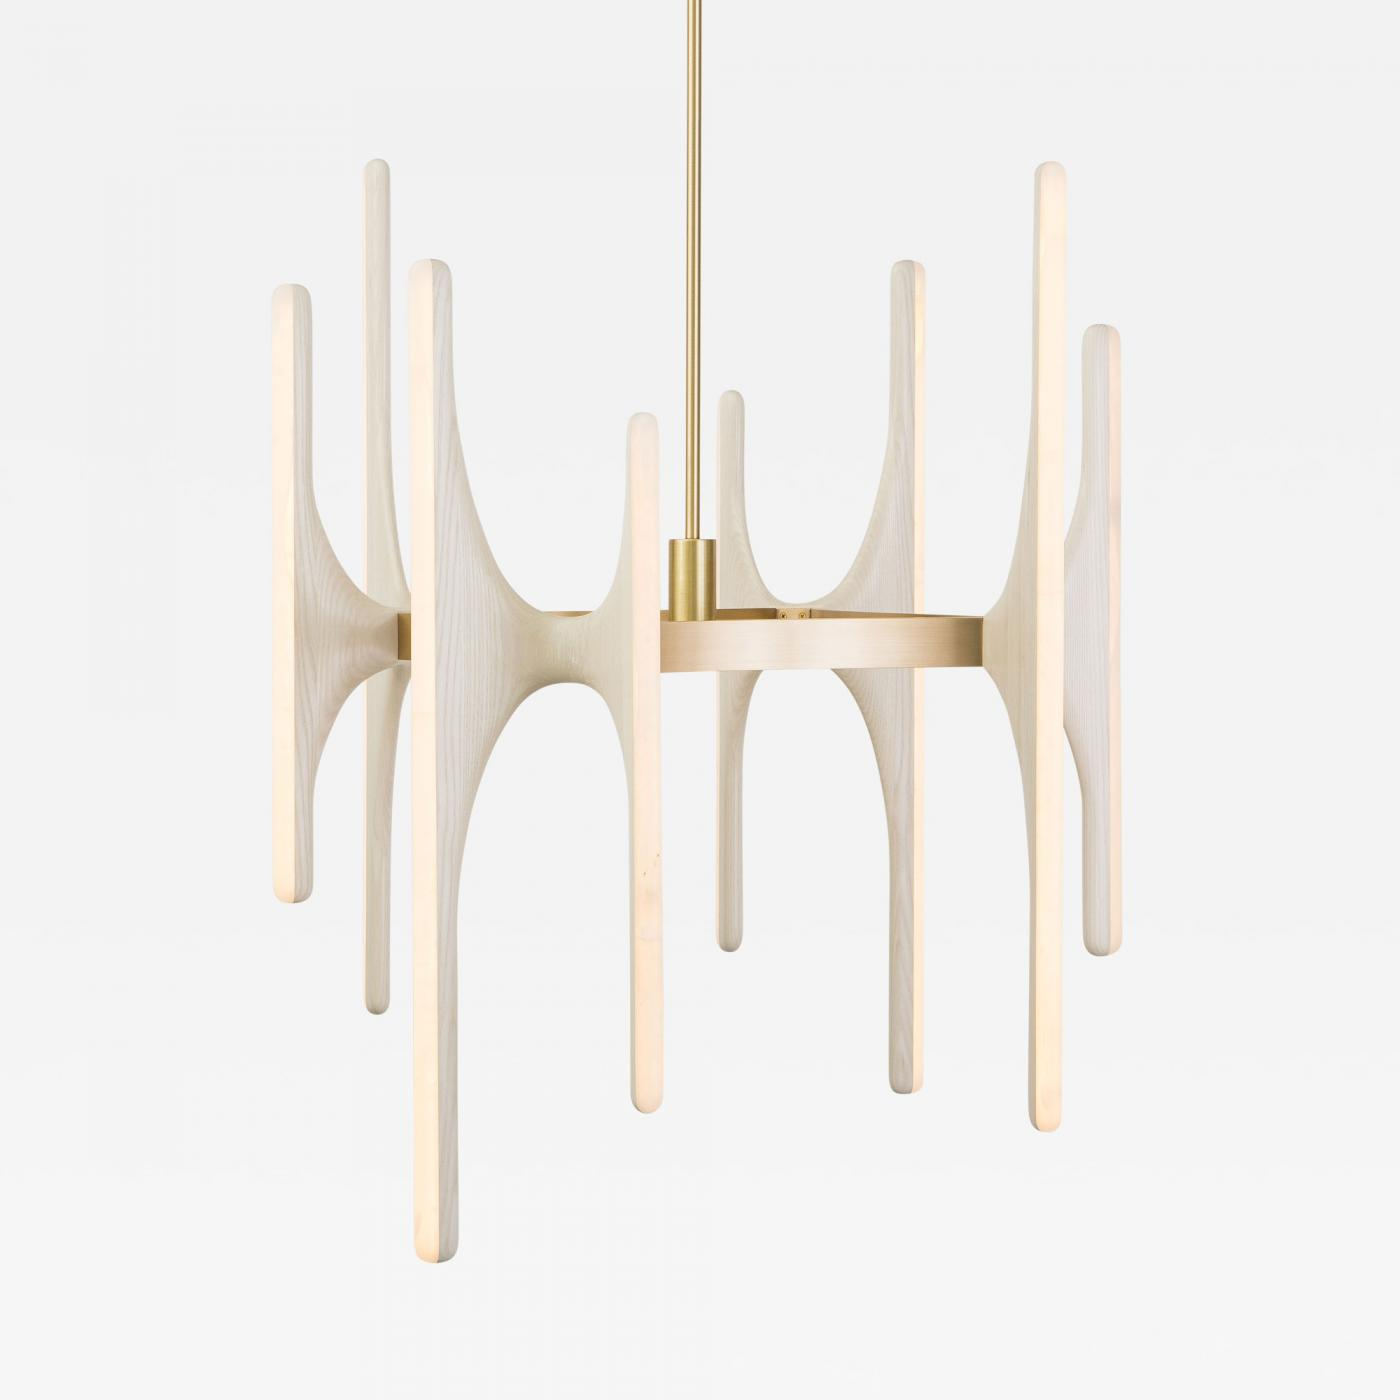 Markus haase markus haase bleached ash and onyx chandelier usa 2016 listings furniture lighting chandeliers and pendants aloadofball Choice Image